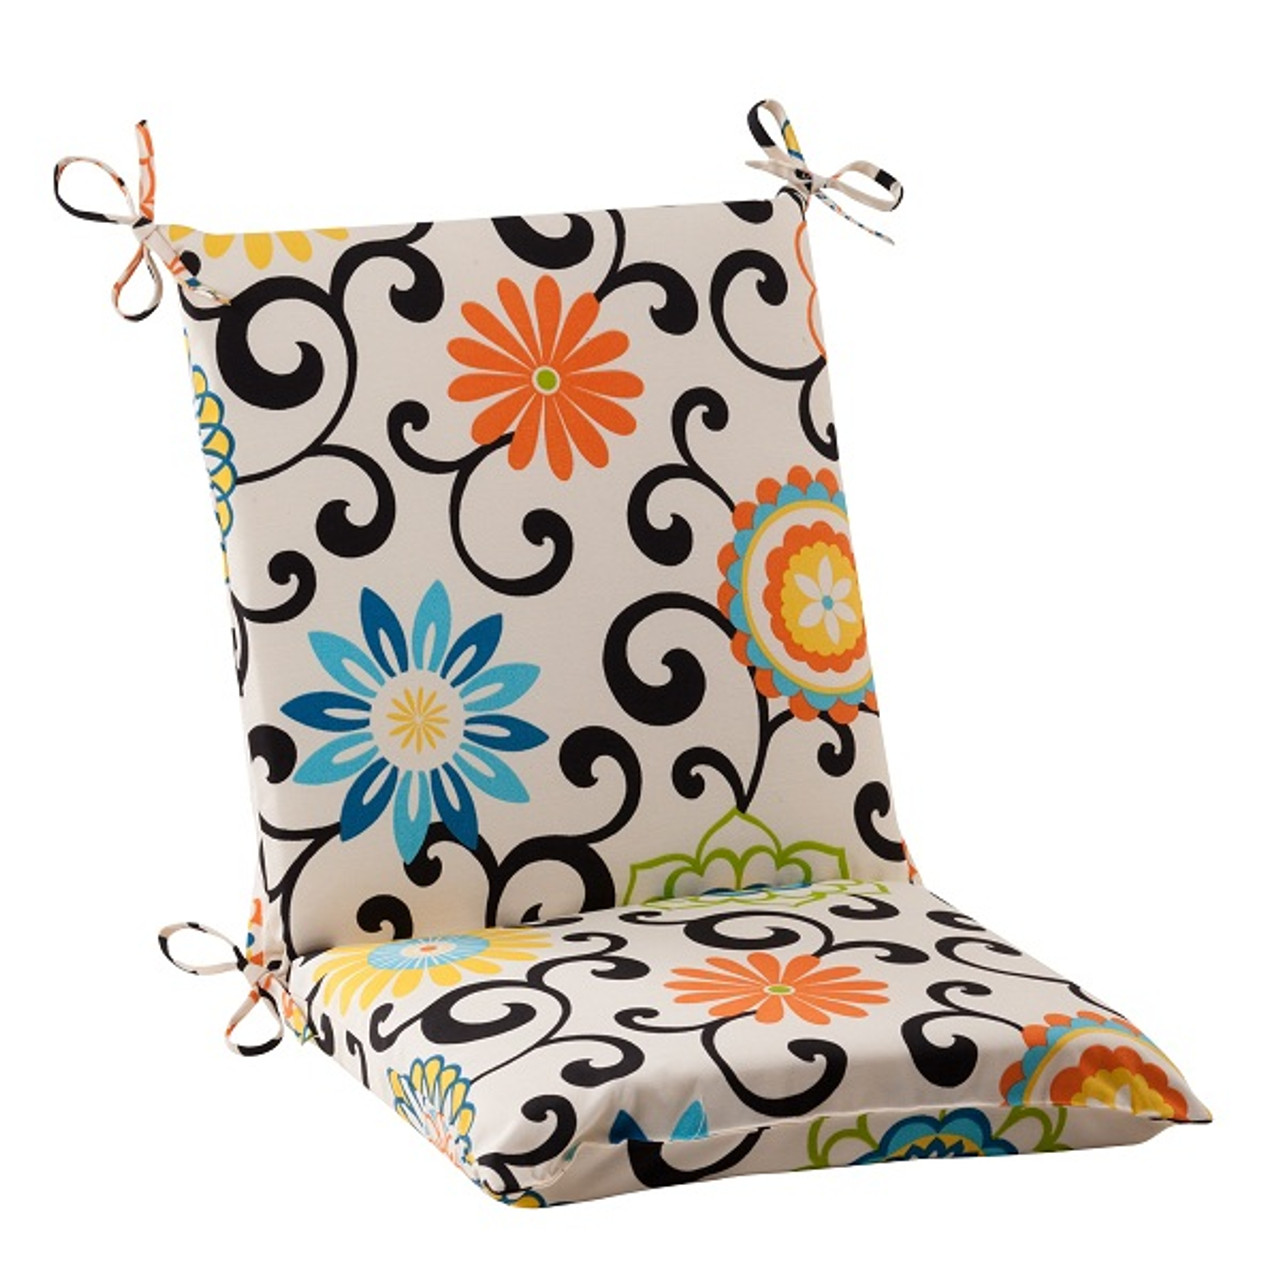 36 5 waverly summer flower outdoor patio furniture square chair cushion